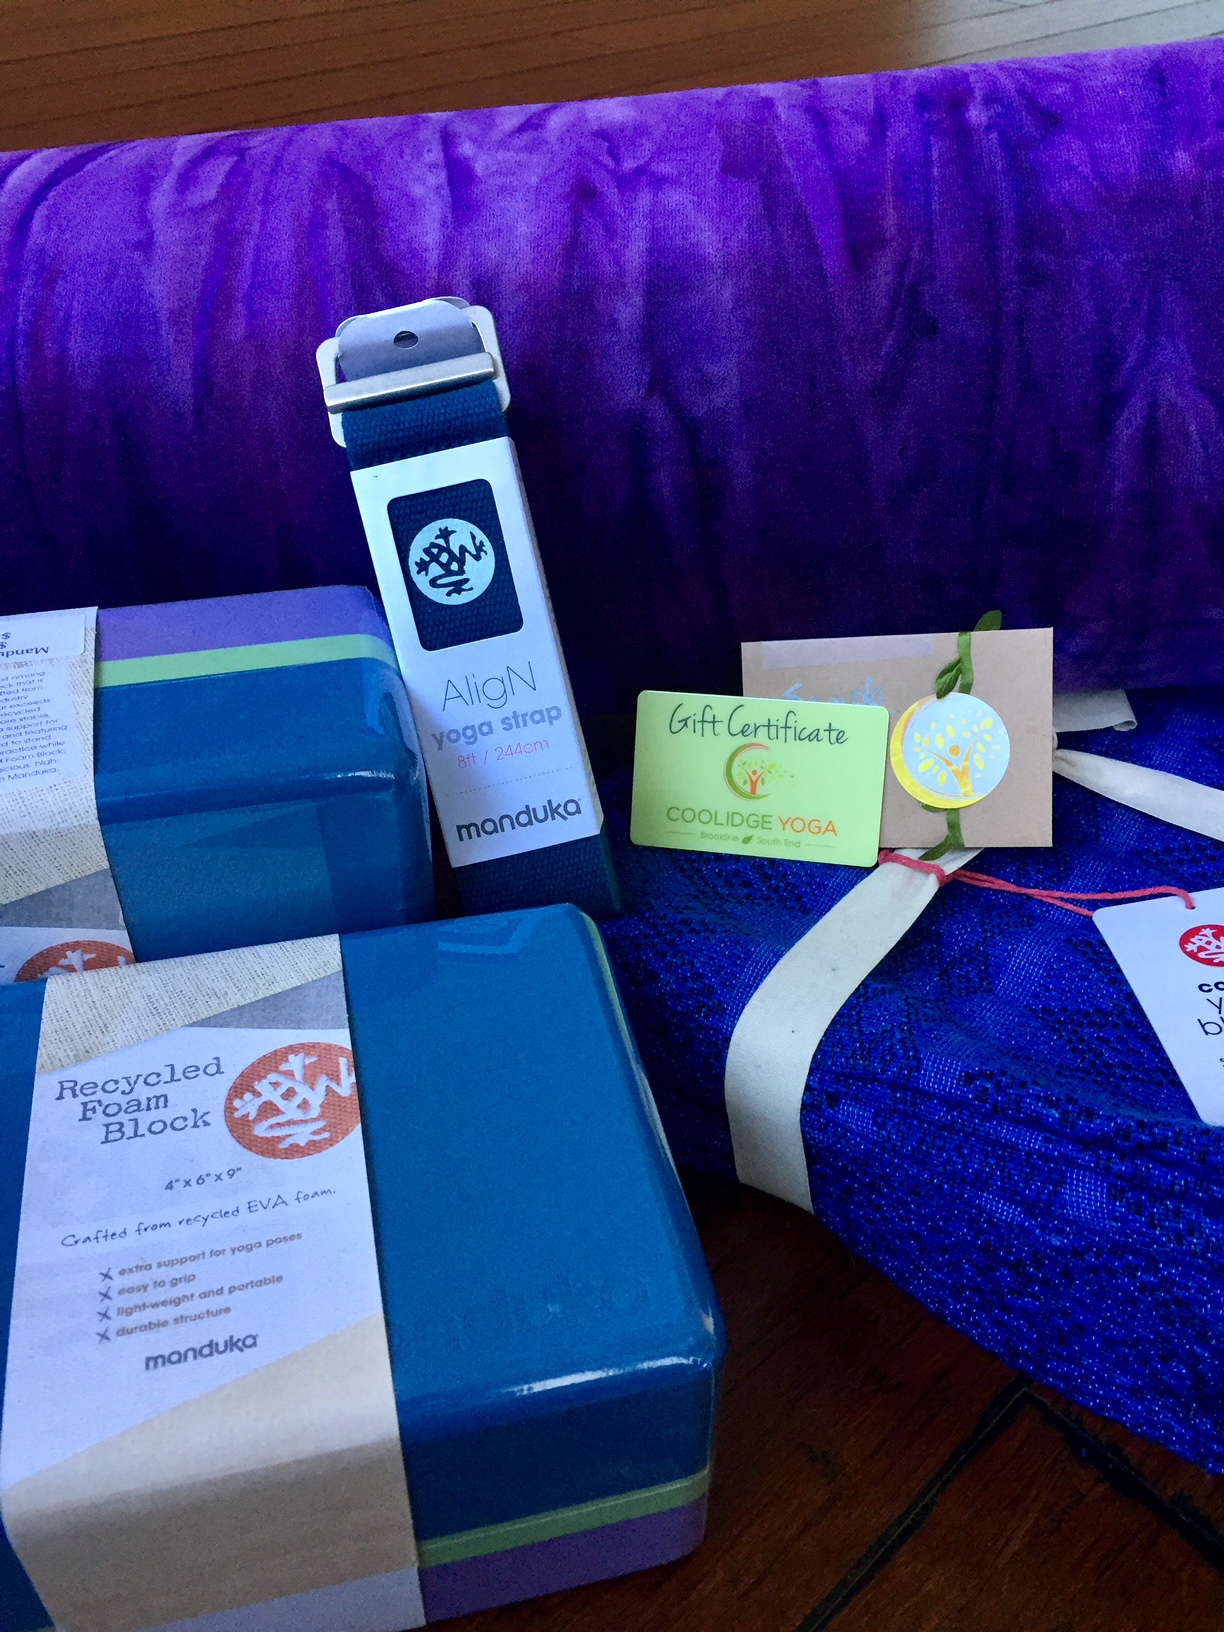 Yoga props for home and gift card at Coolidge Yoga